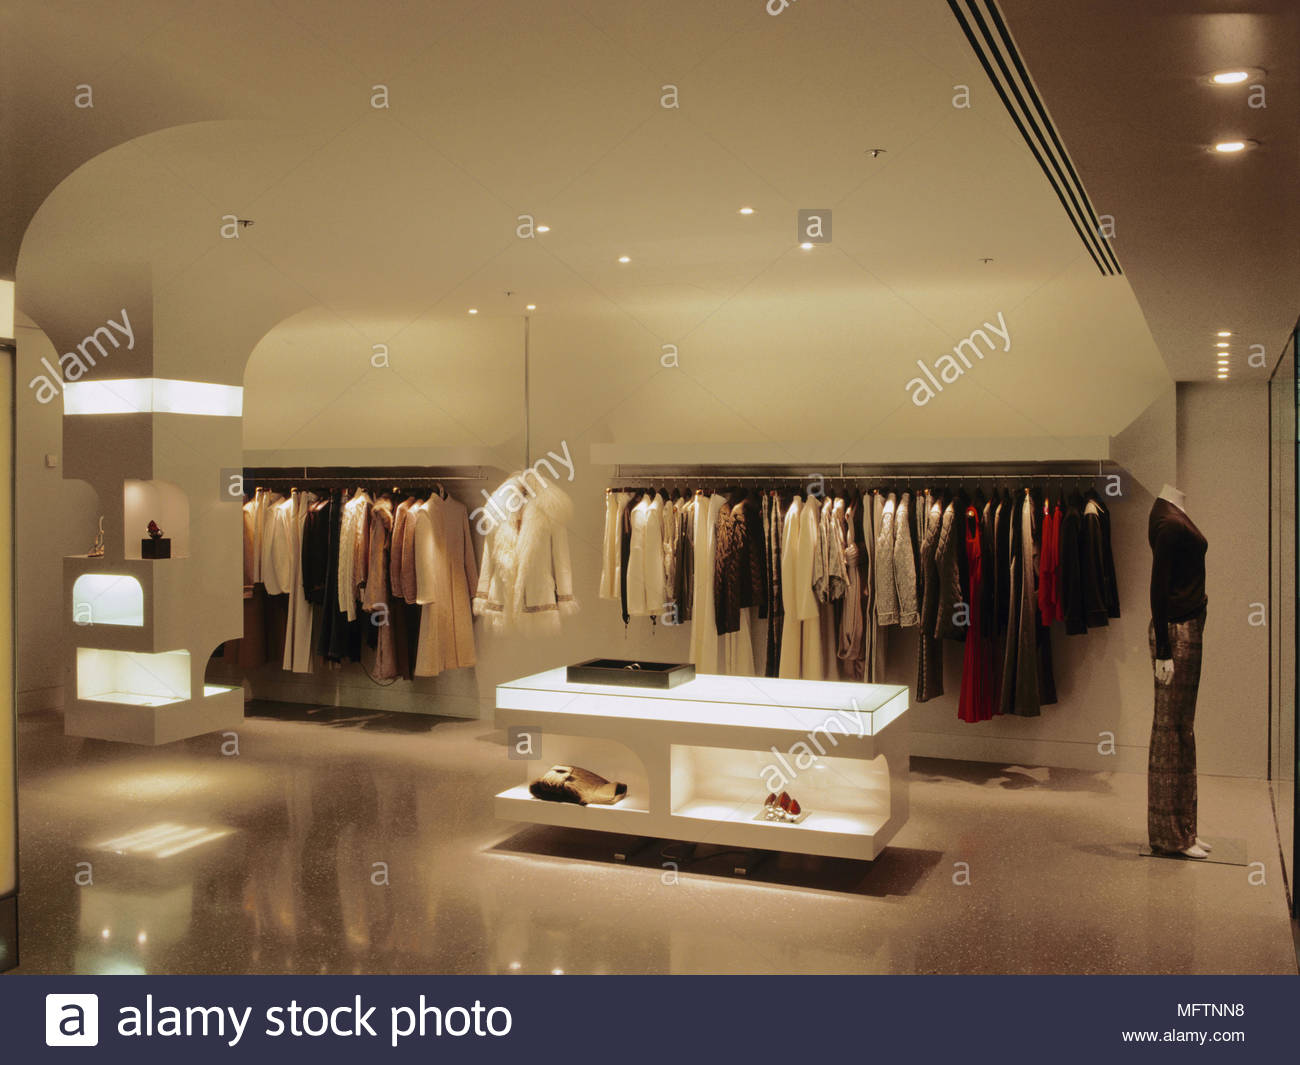 Interior of clothing shop  Interiors designer shops shopping retailing display clothing - Stock Image